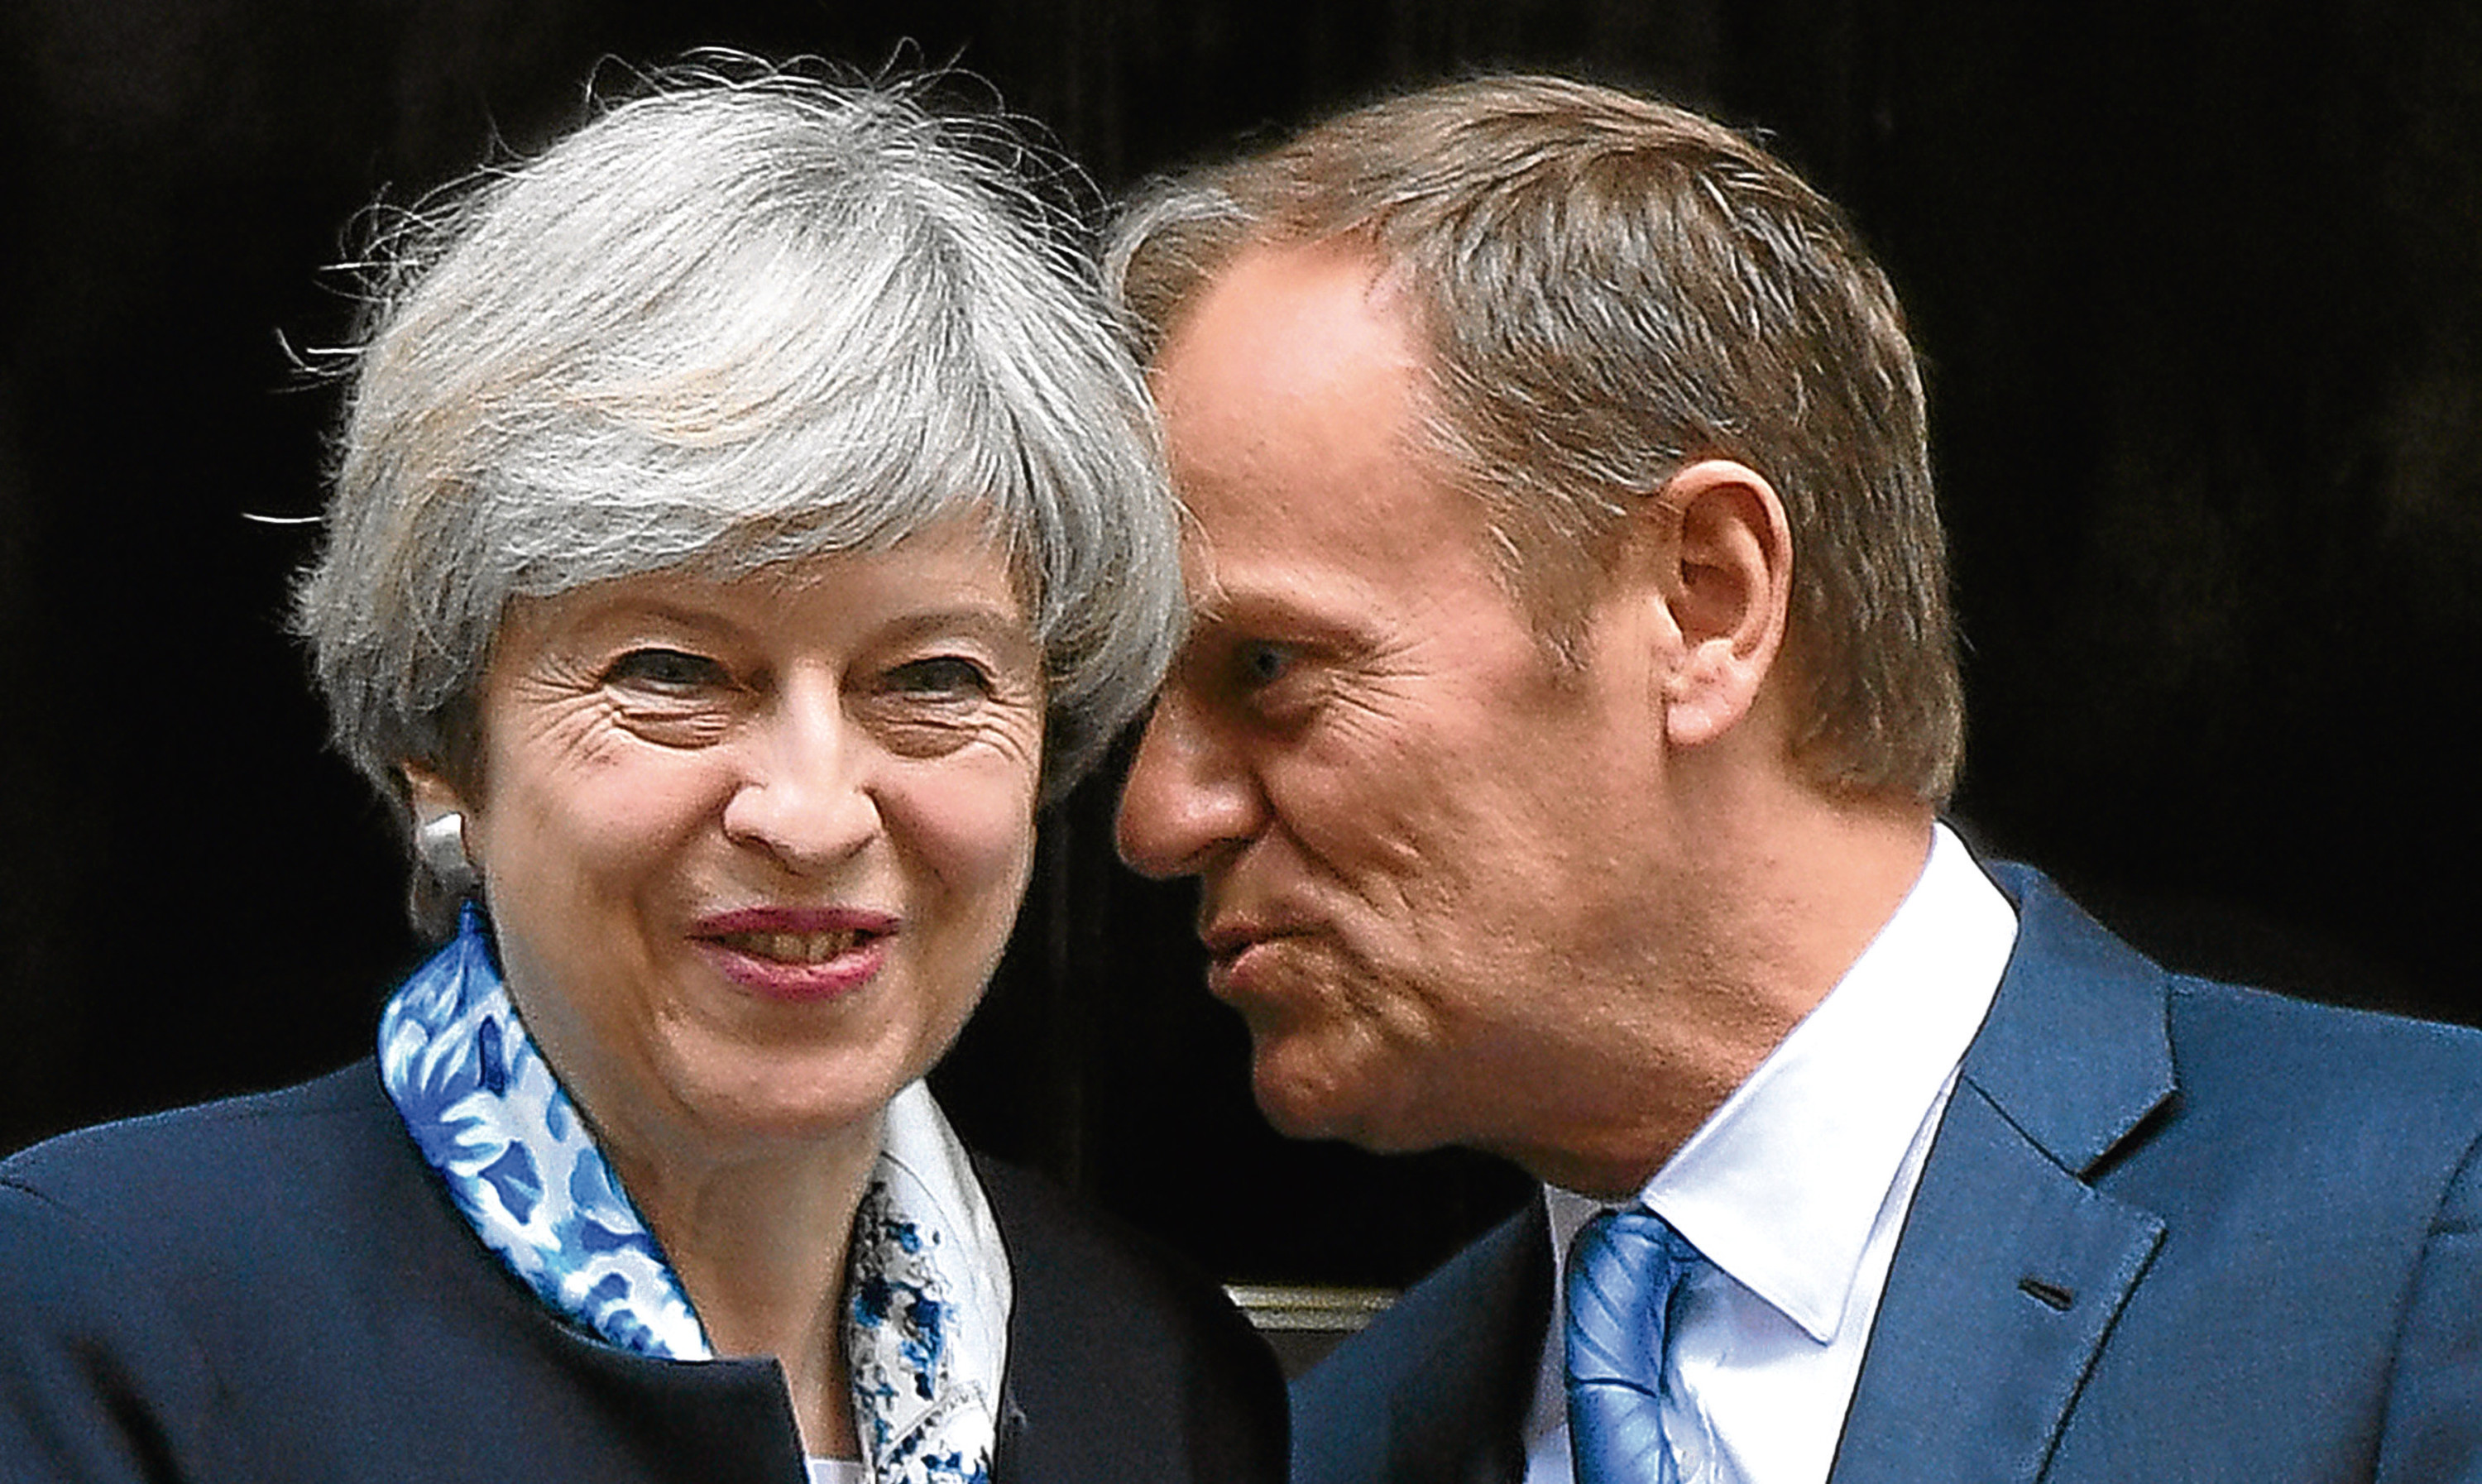 Prime Minister Theresa May greets European Council president Donald Tusk outside 10 Downing Street.